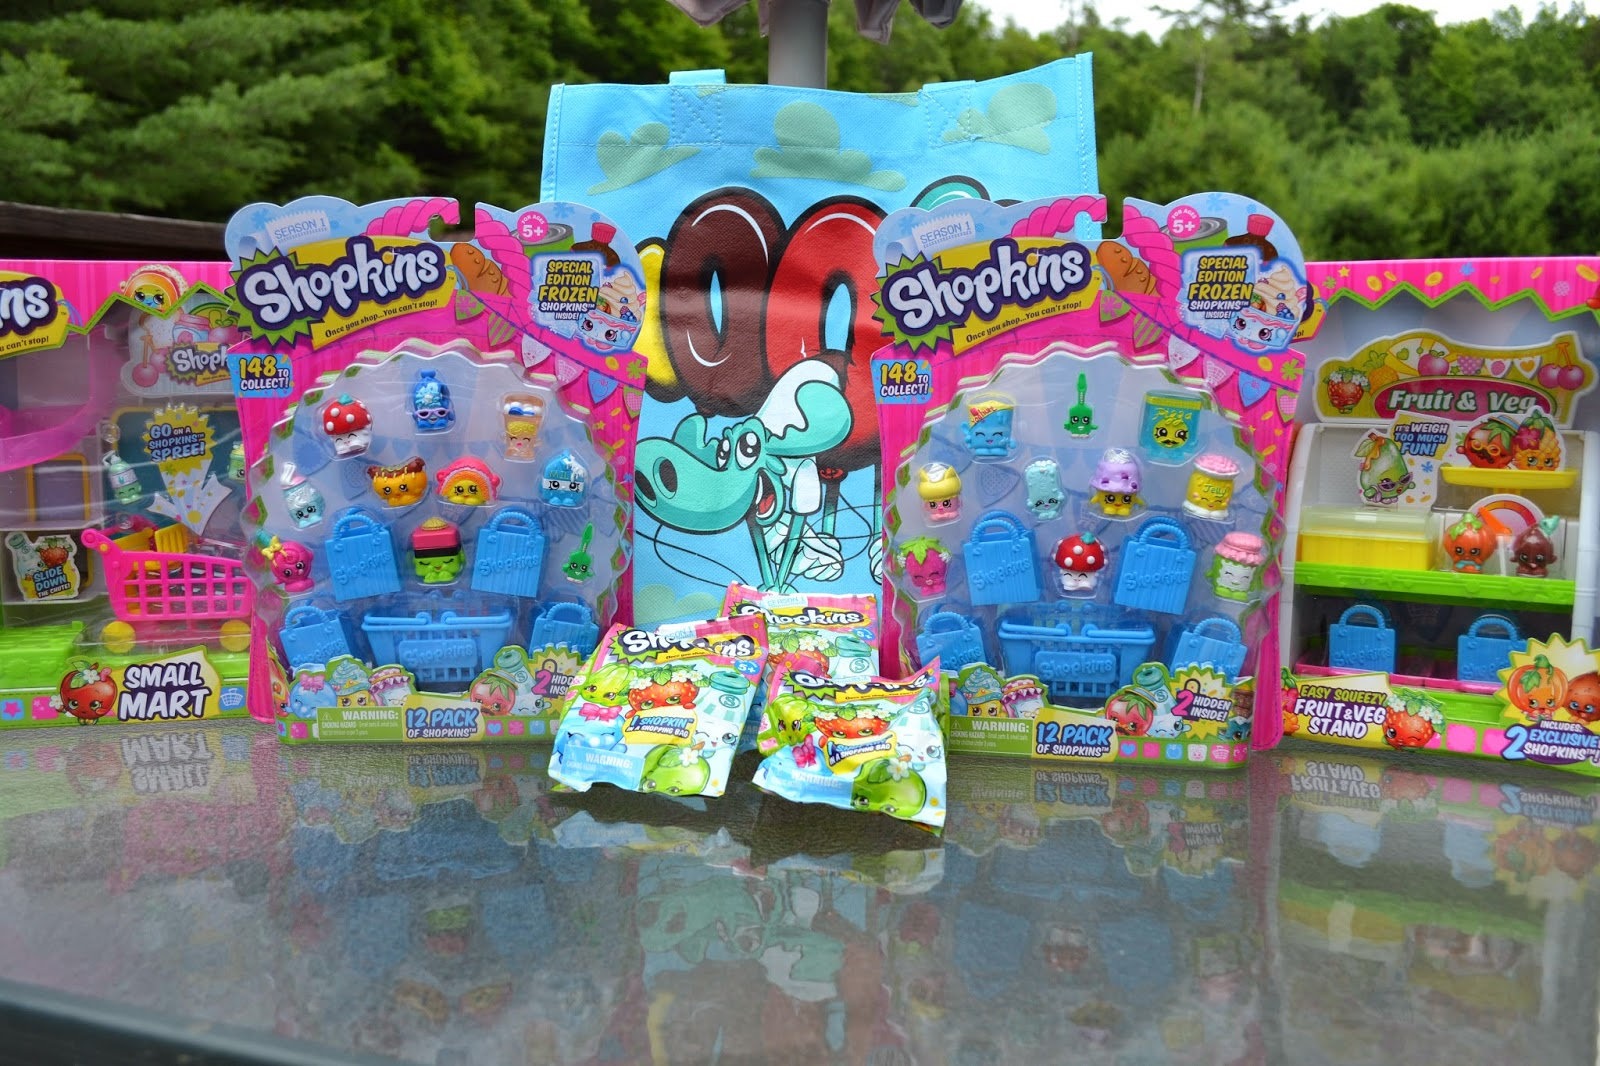 shopkin14 Shopkins Summer Playdate   What a great day with new collectible and a  Shopkins prize pack giveaway!